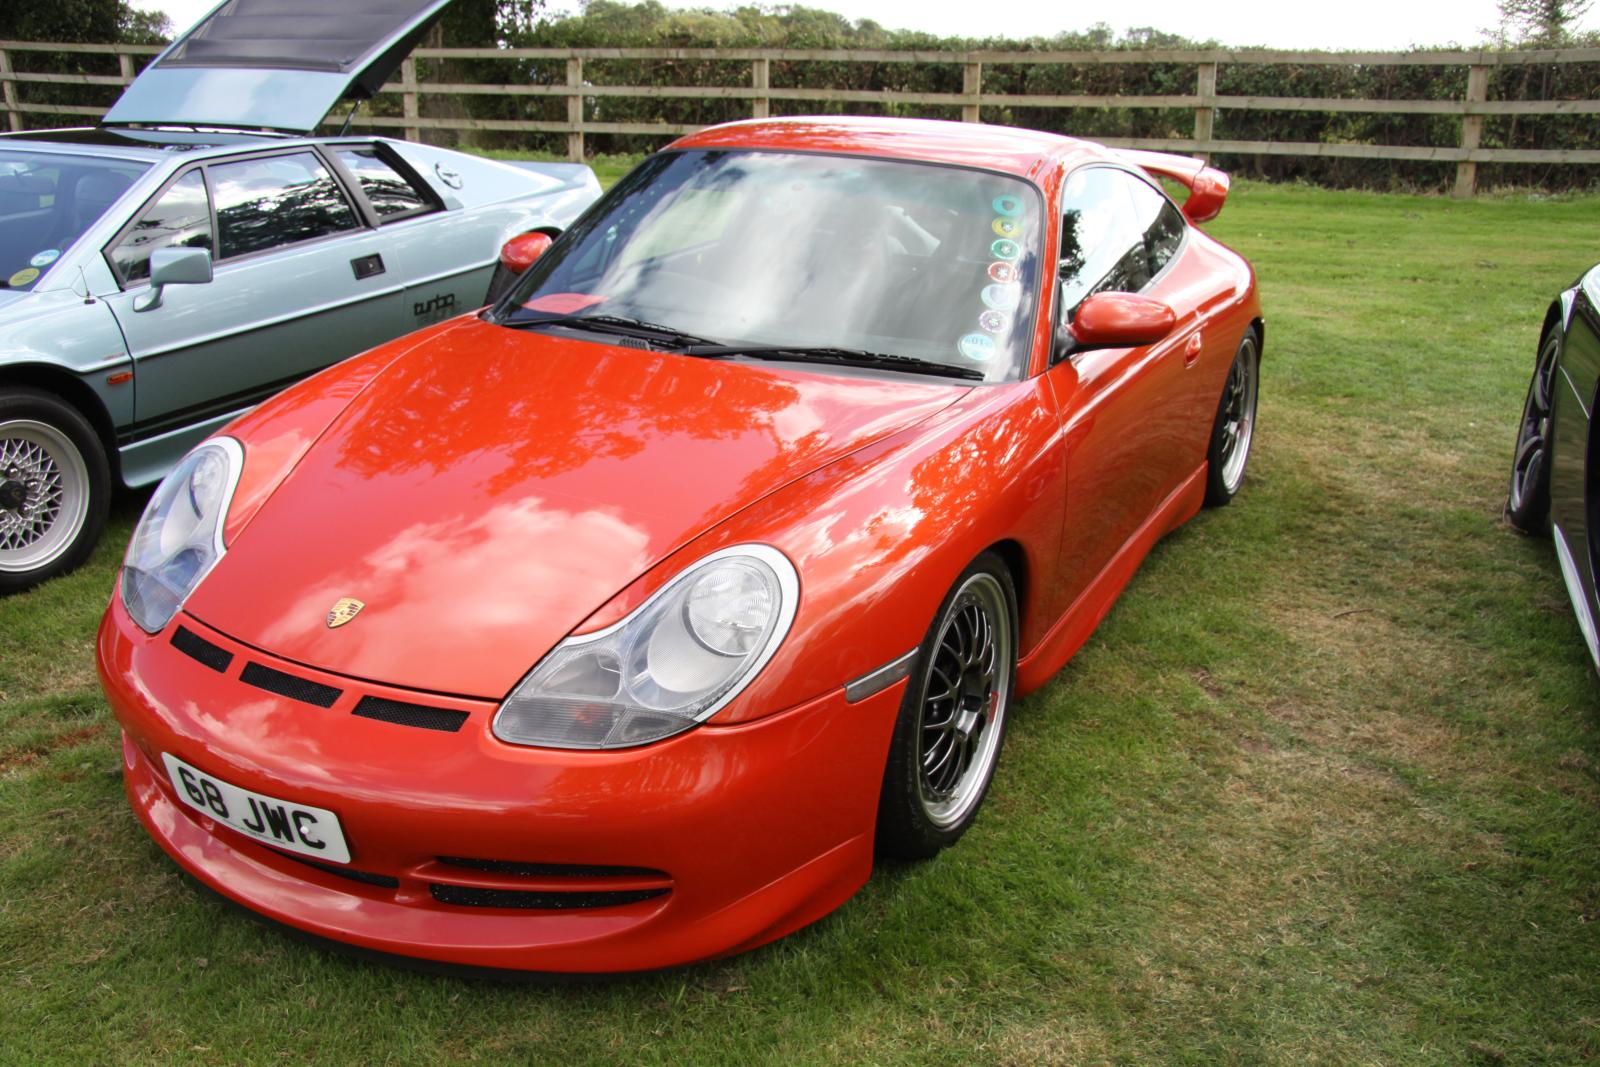 Porsche 996 Turbo S >> File:Red Porsche 996 GT3 with Cup front spoiler and BBS rims.jpg - Wikimedia Commons